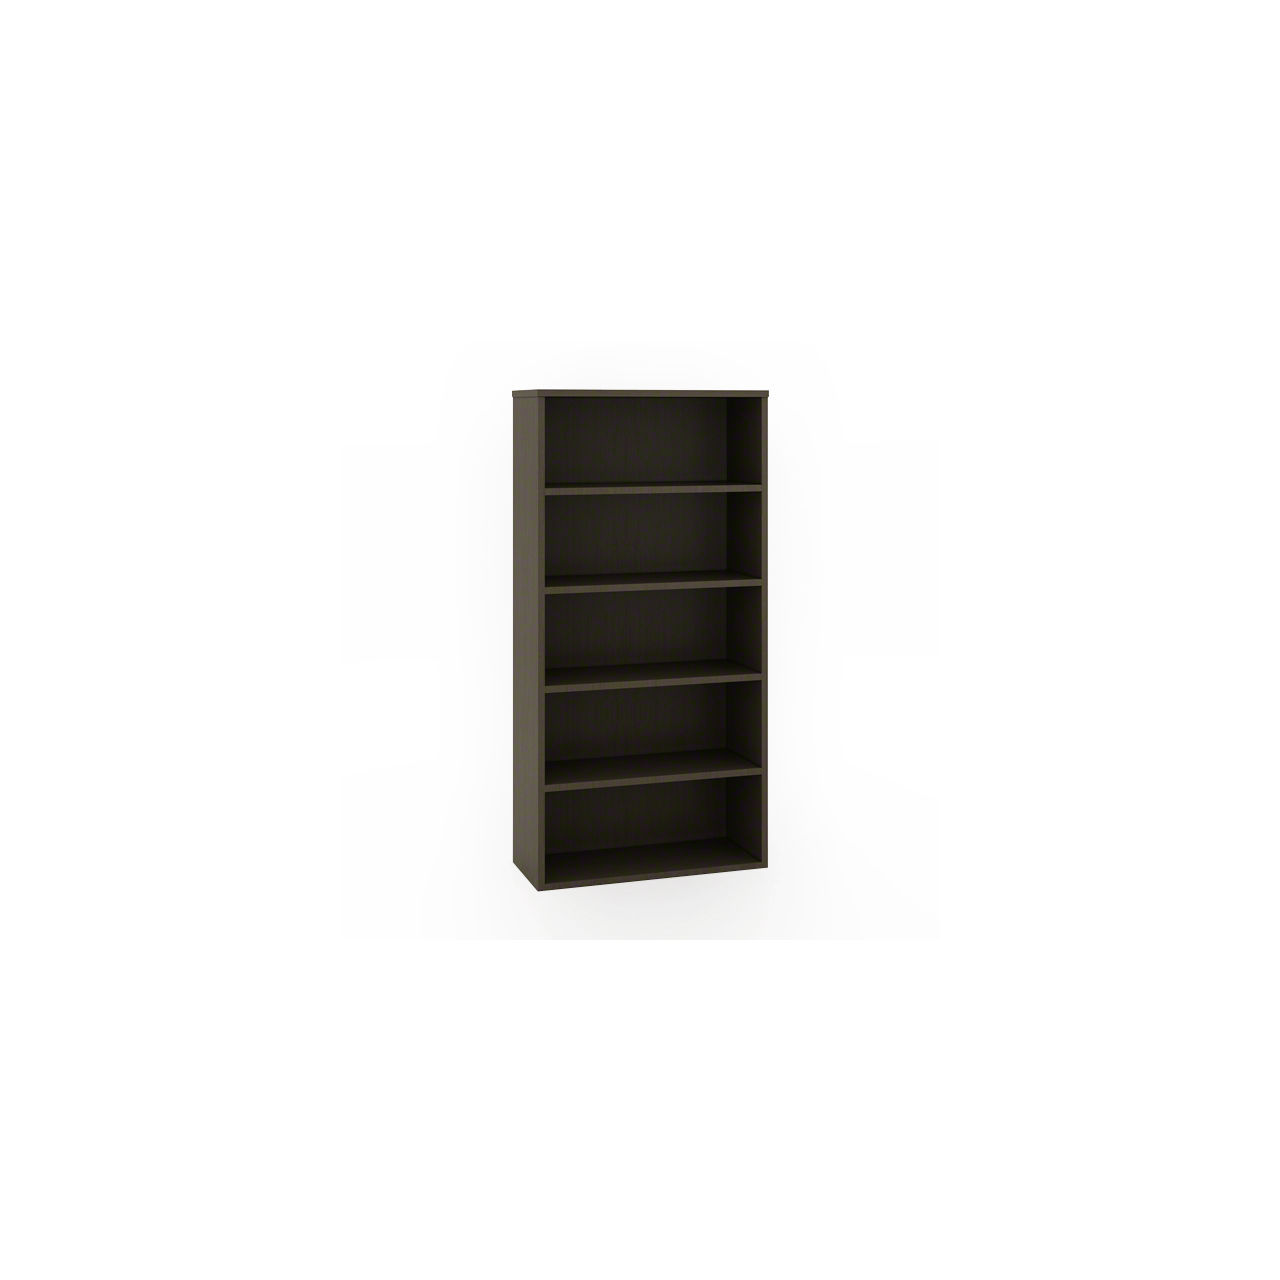 Currency Tall Bookcase in Chocolate Walnut by Steelcase